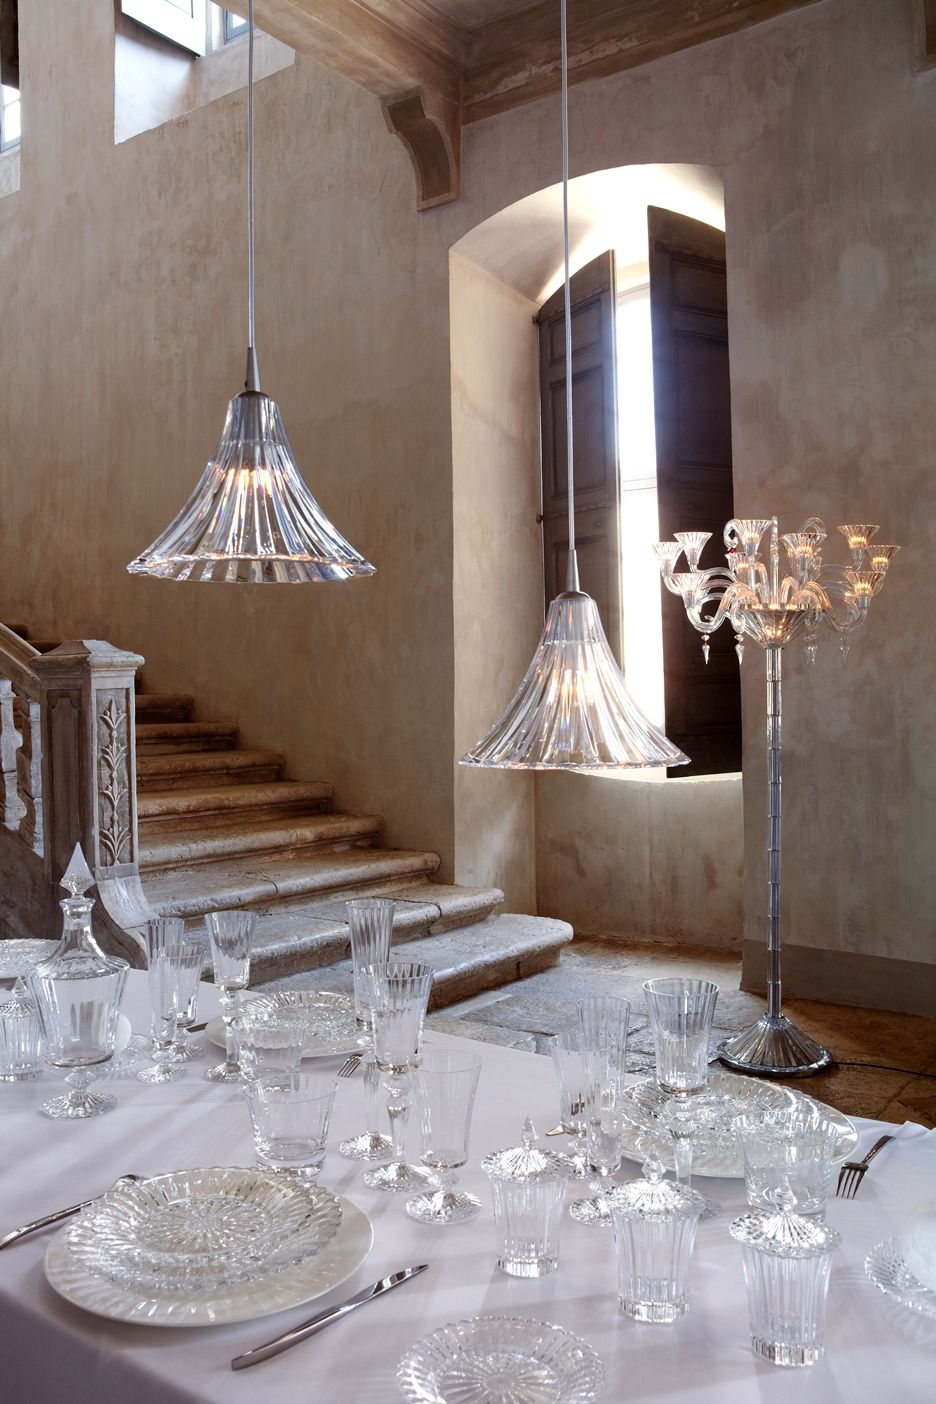 Baccarat Mille Nuits candelabrum | Lighting | Pinterest | Products